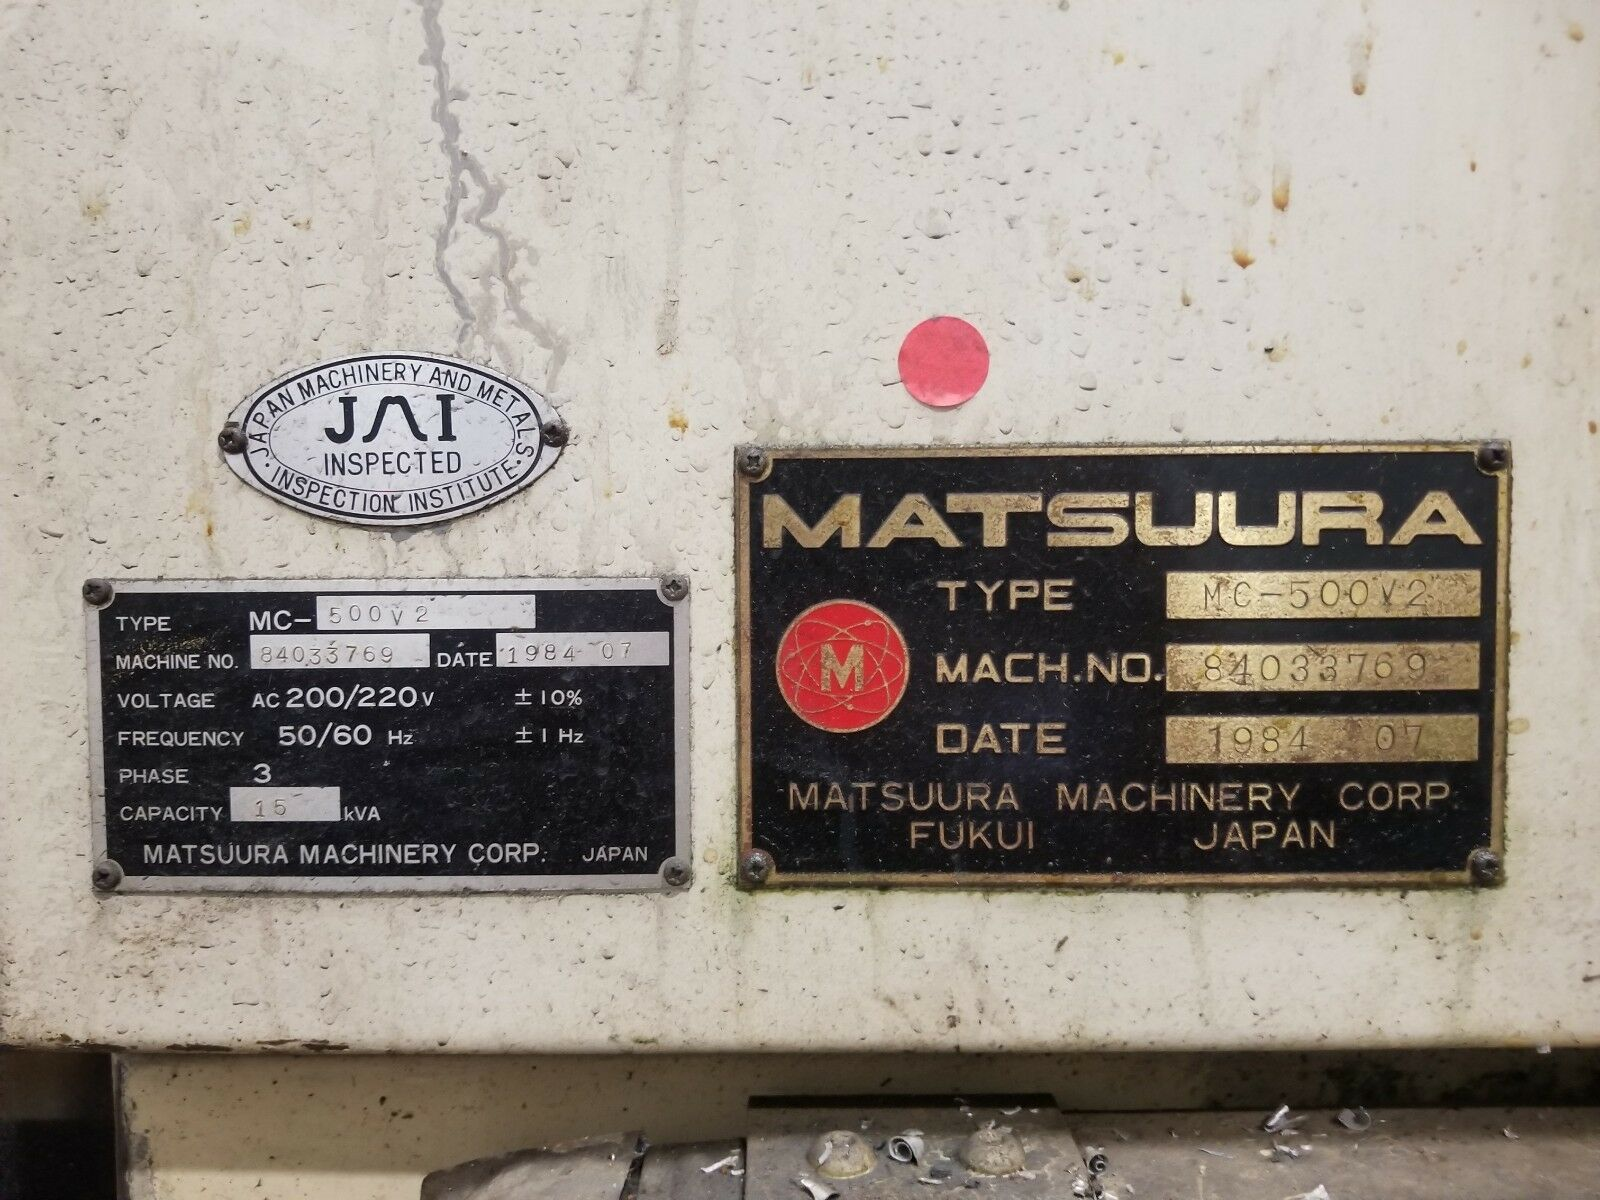 Type MC-500V2 on nameplate in back